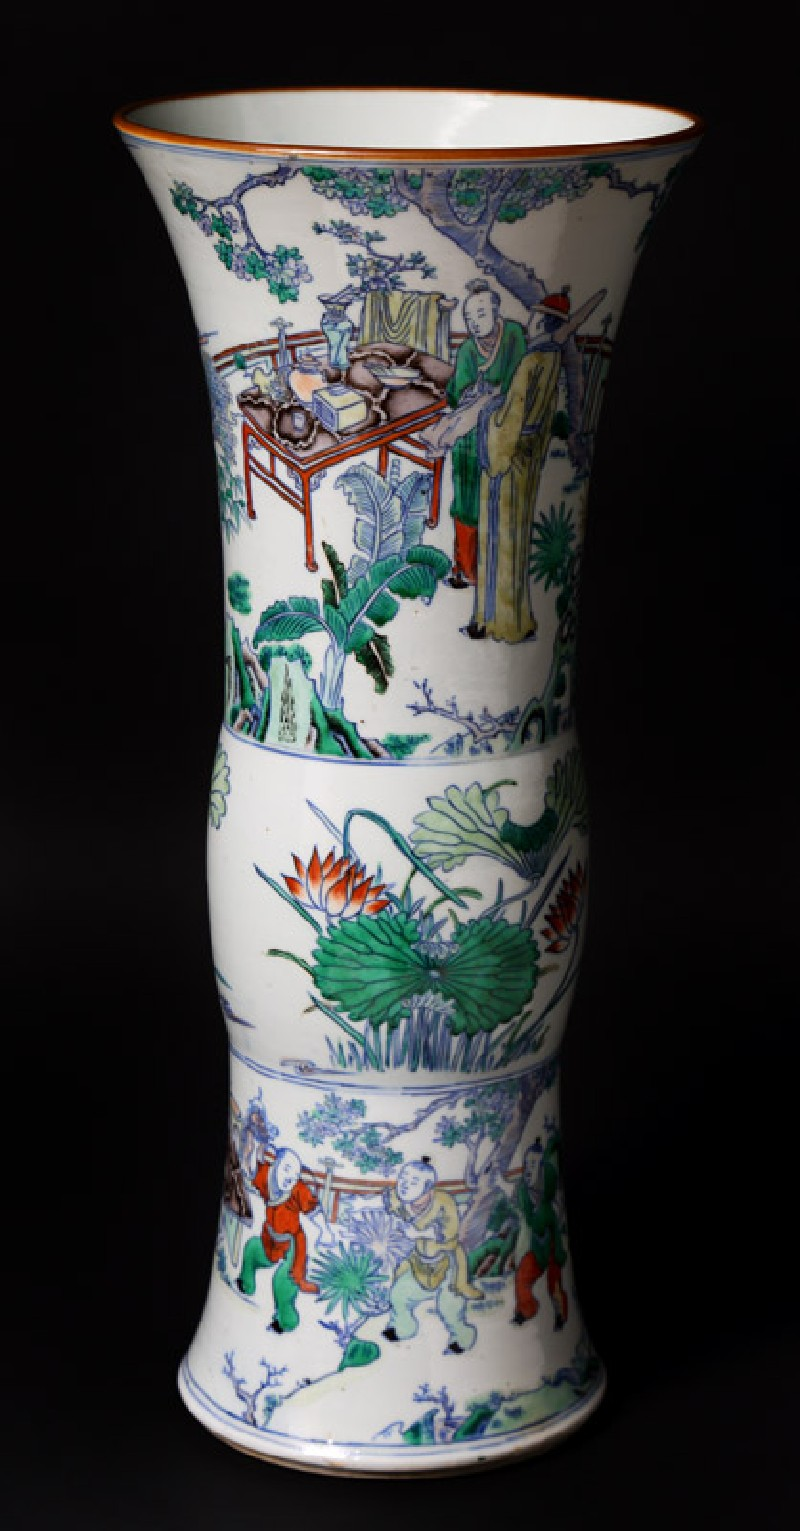 Beaker vase with figures in a garden